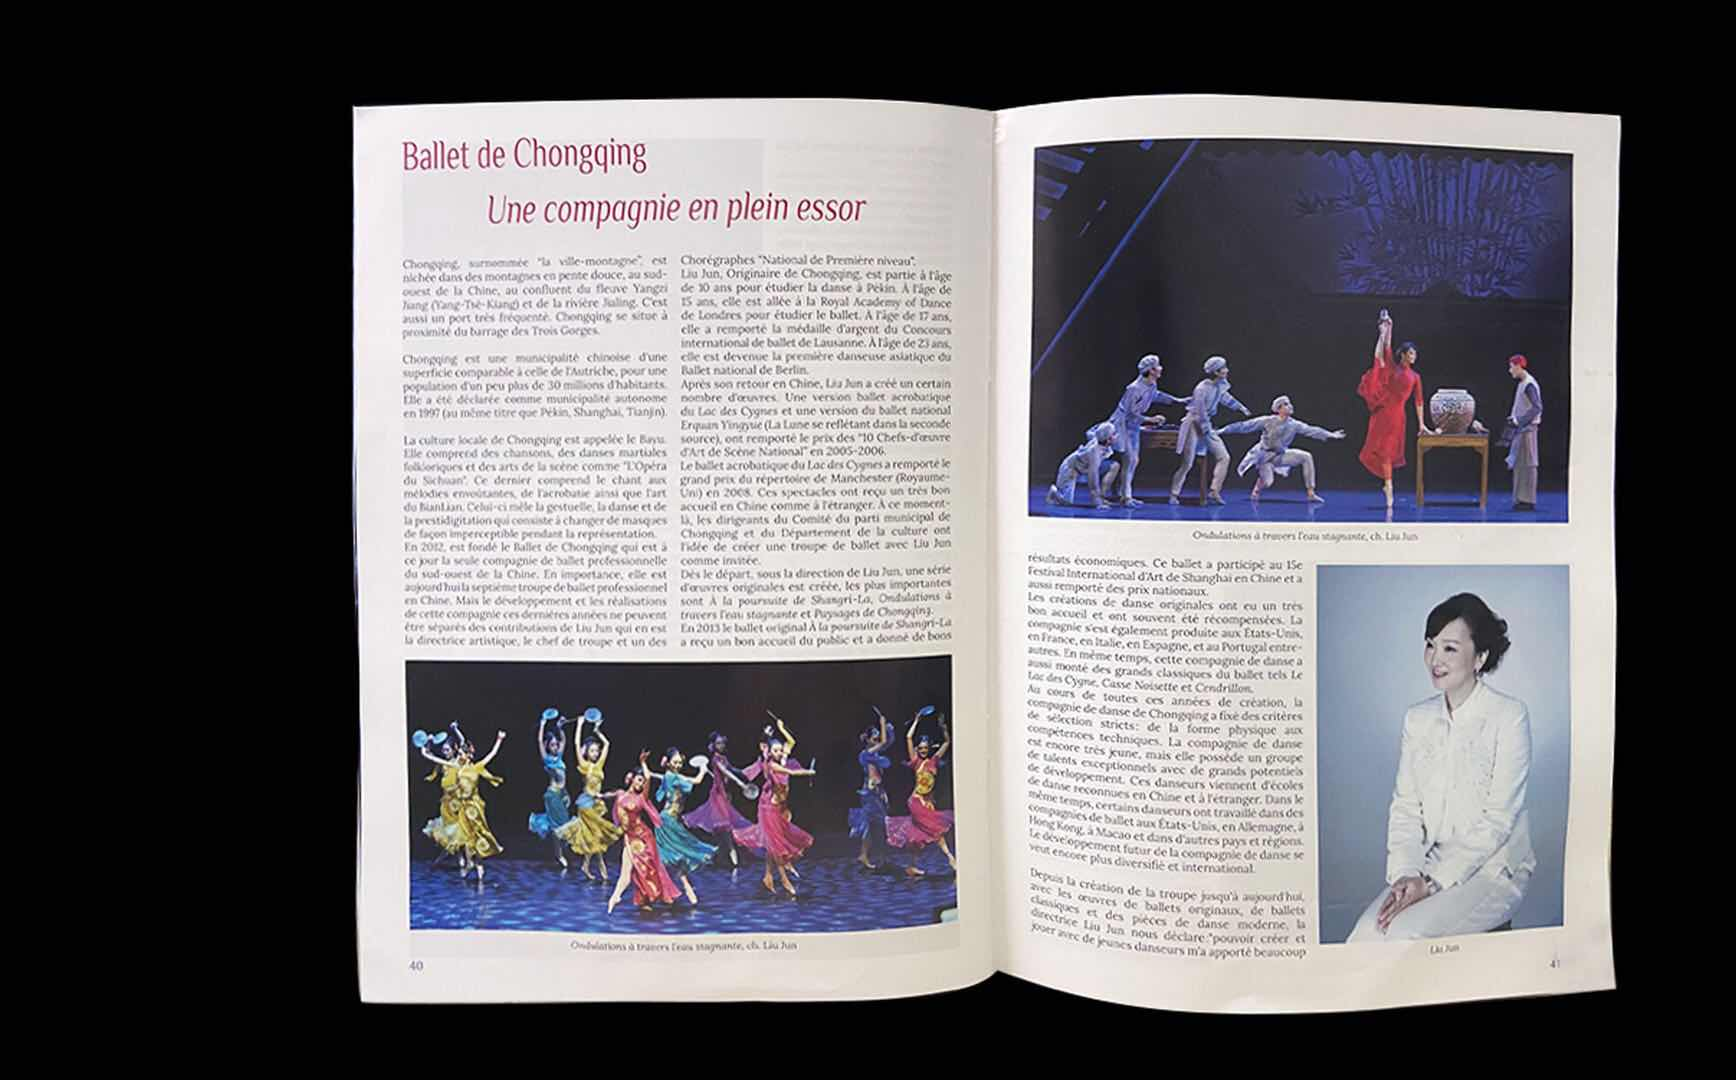 The coverage of Europen Magzine Dancer Dancer